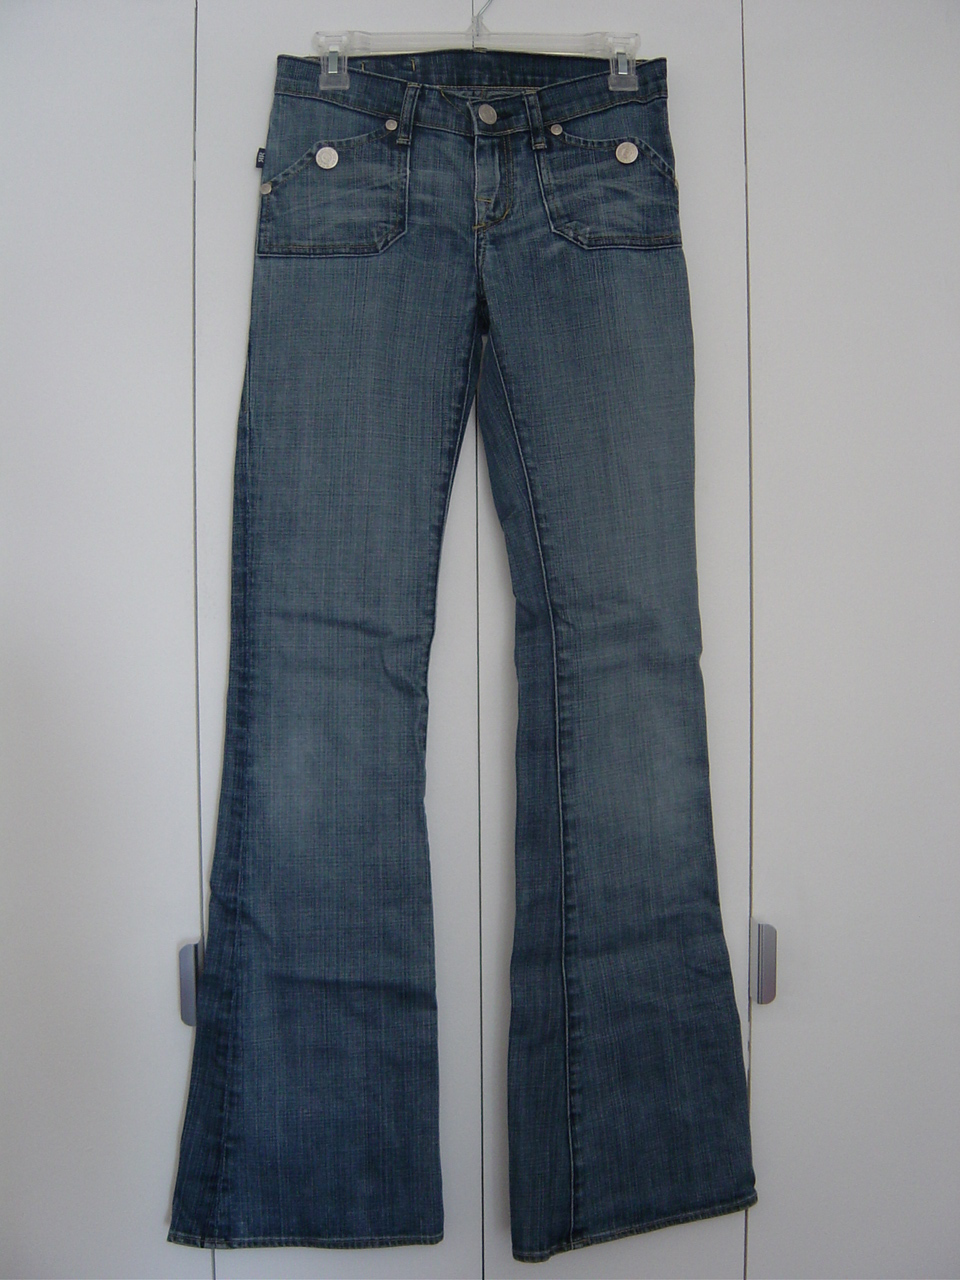 Primary image for Rock & Republic Scorpion Jeans in Trick (Size: 26) GUC